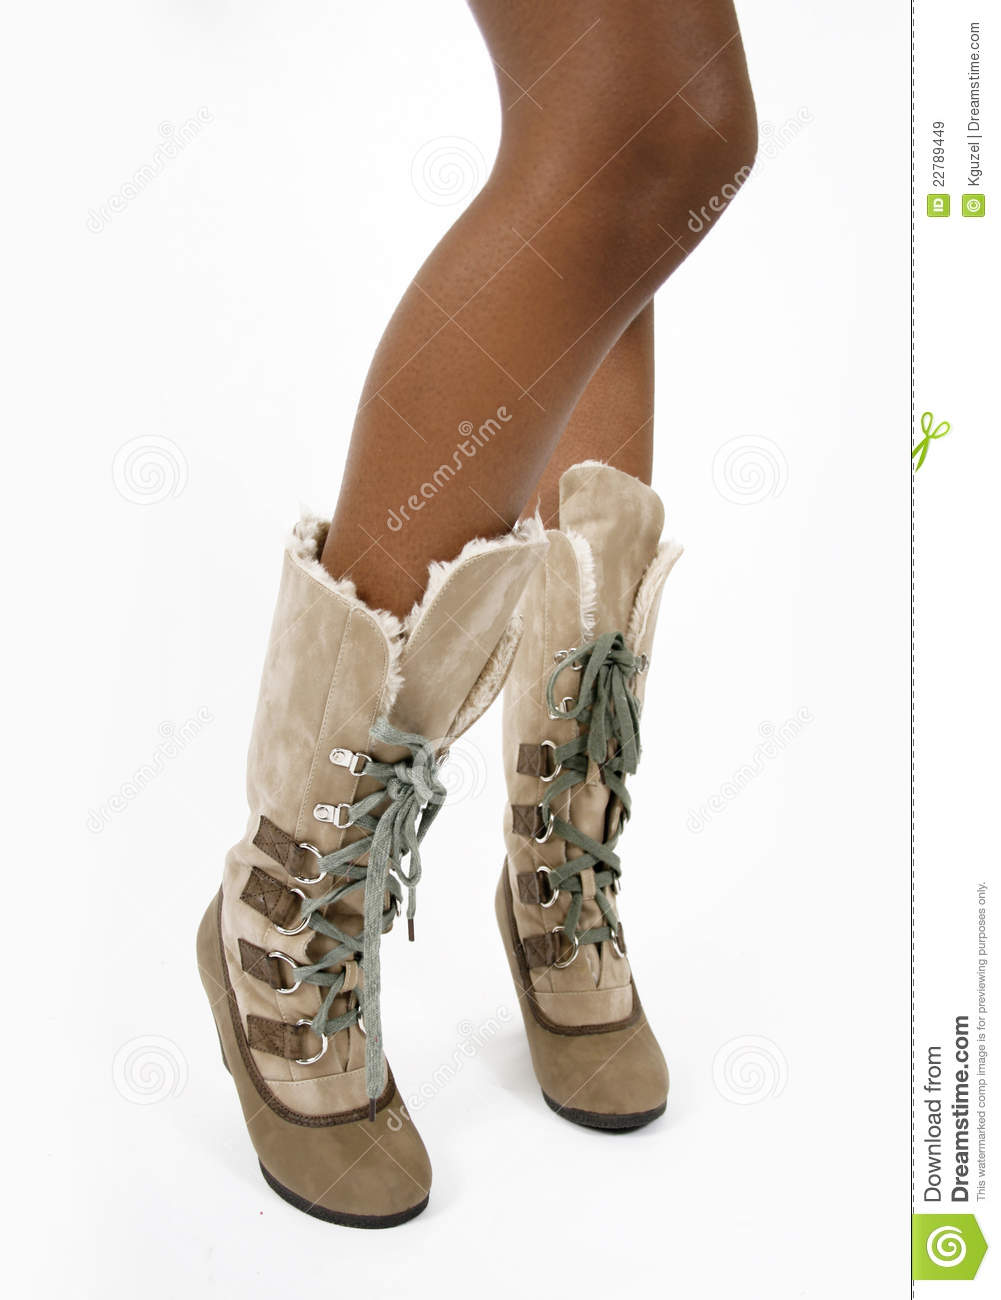 stock images of ` Fashion beige fur women s boots on a sexy legs